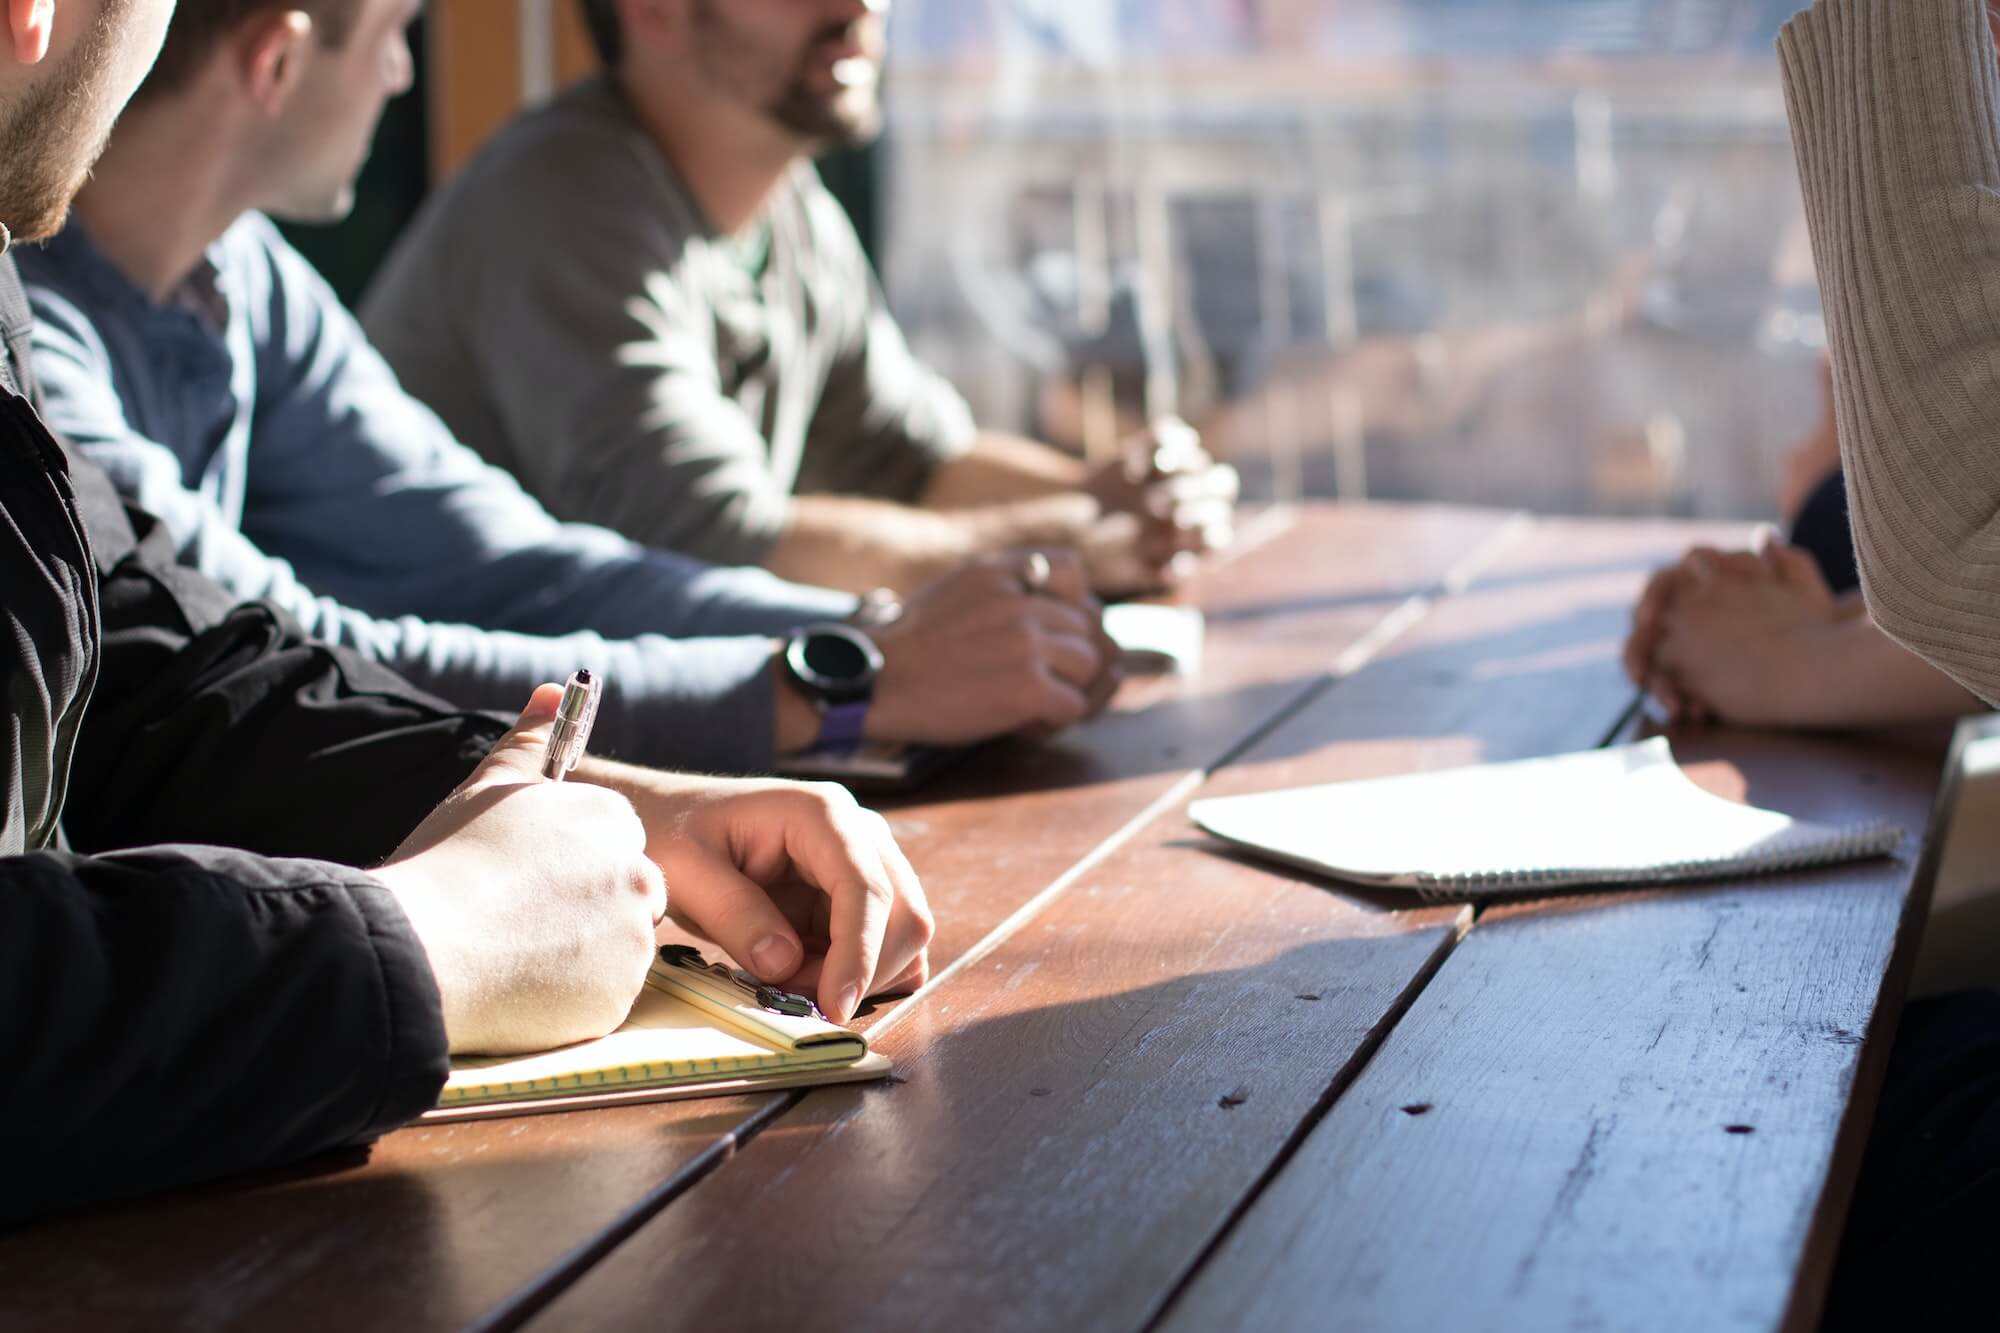 Why are regular OKR review meetings so important?